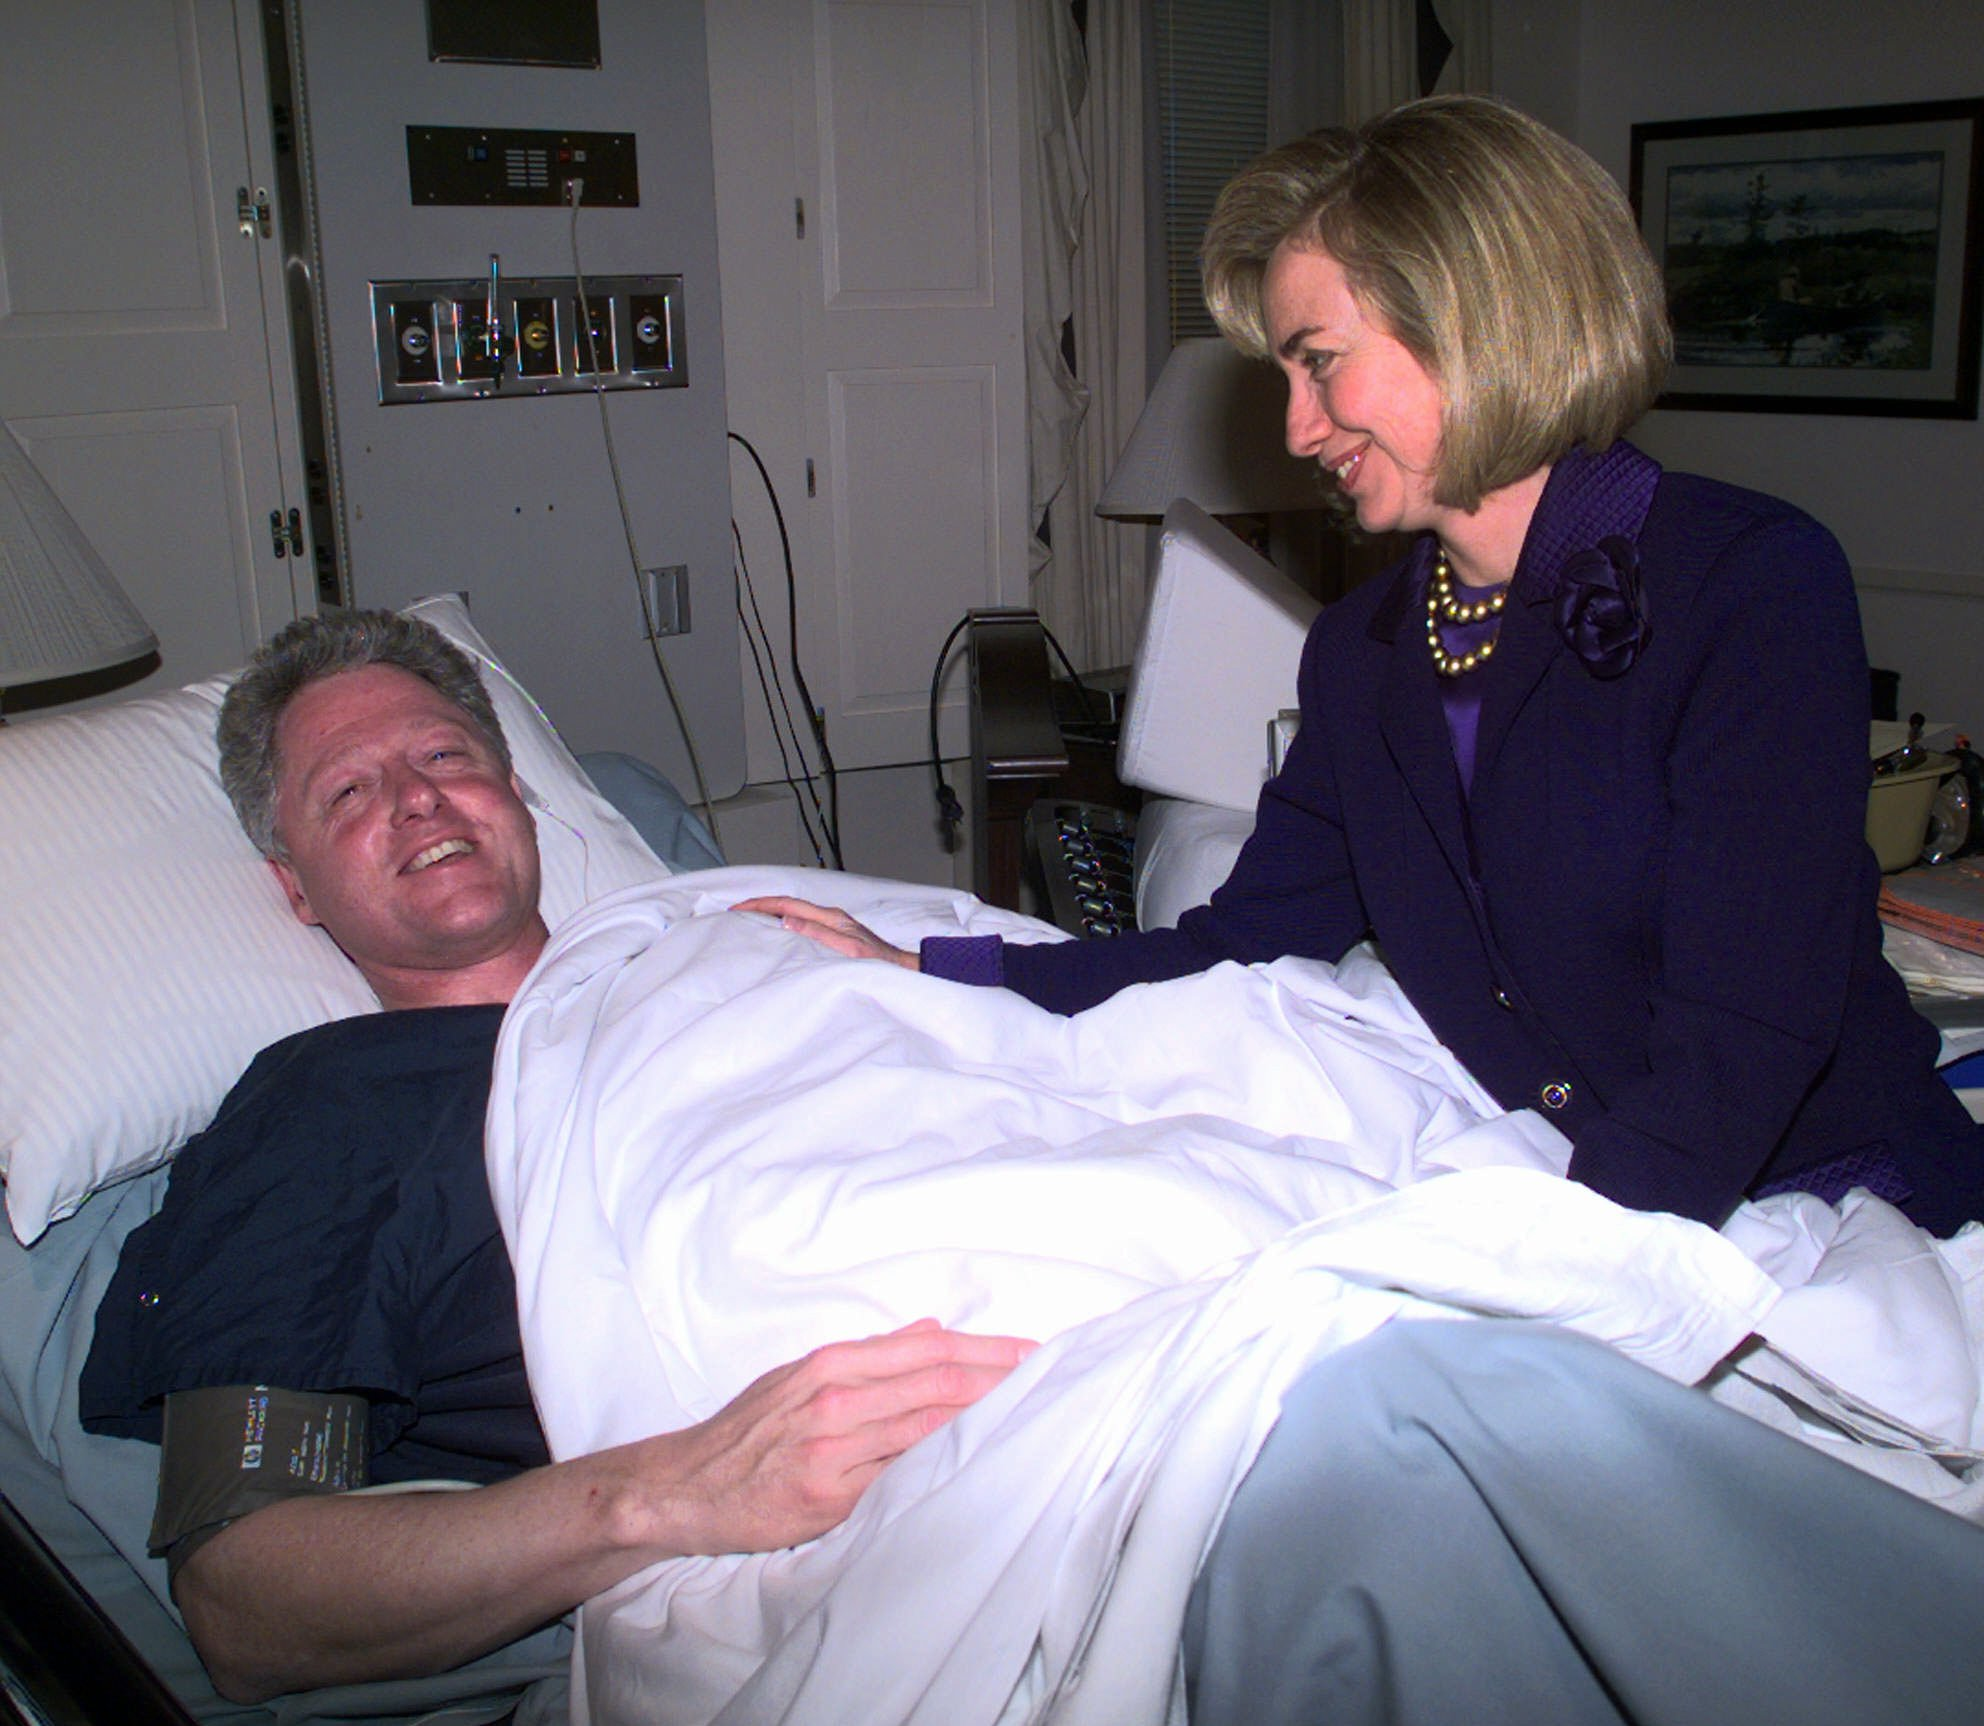 First Lady Hillary Rodham Clinton visits President Bill Clinton on March 14, 1997 at Bethesda Medical Center in Bethesda, Md. after he underwent surgery on his knee.